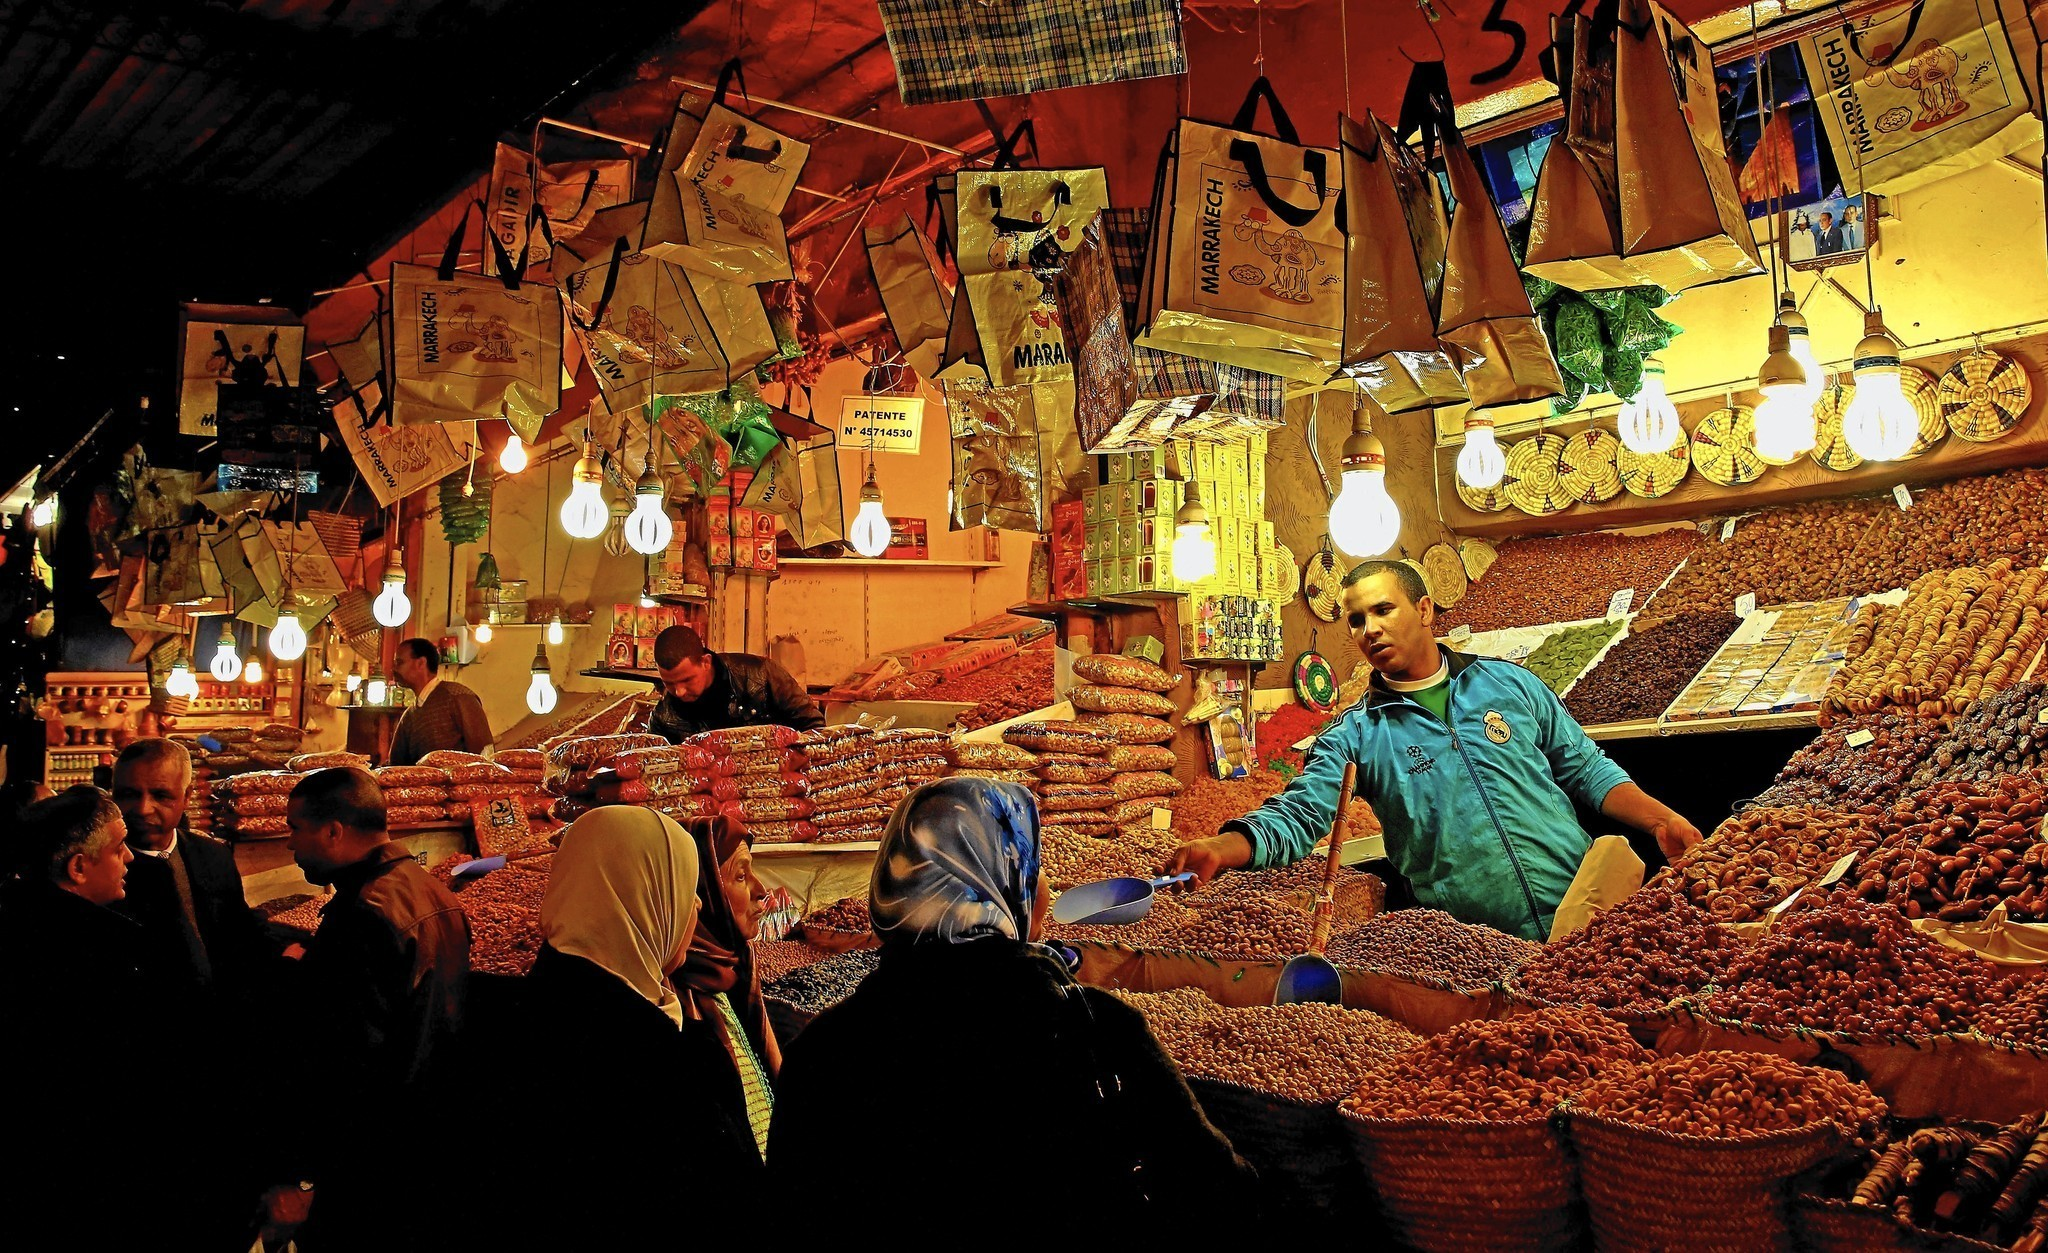 Marrakech souks entice, but be prepared to haggle